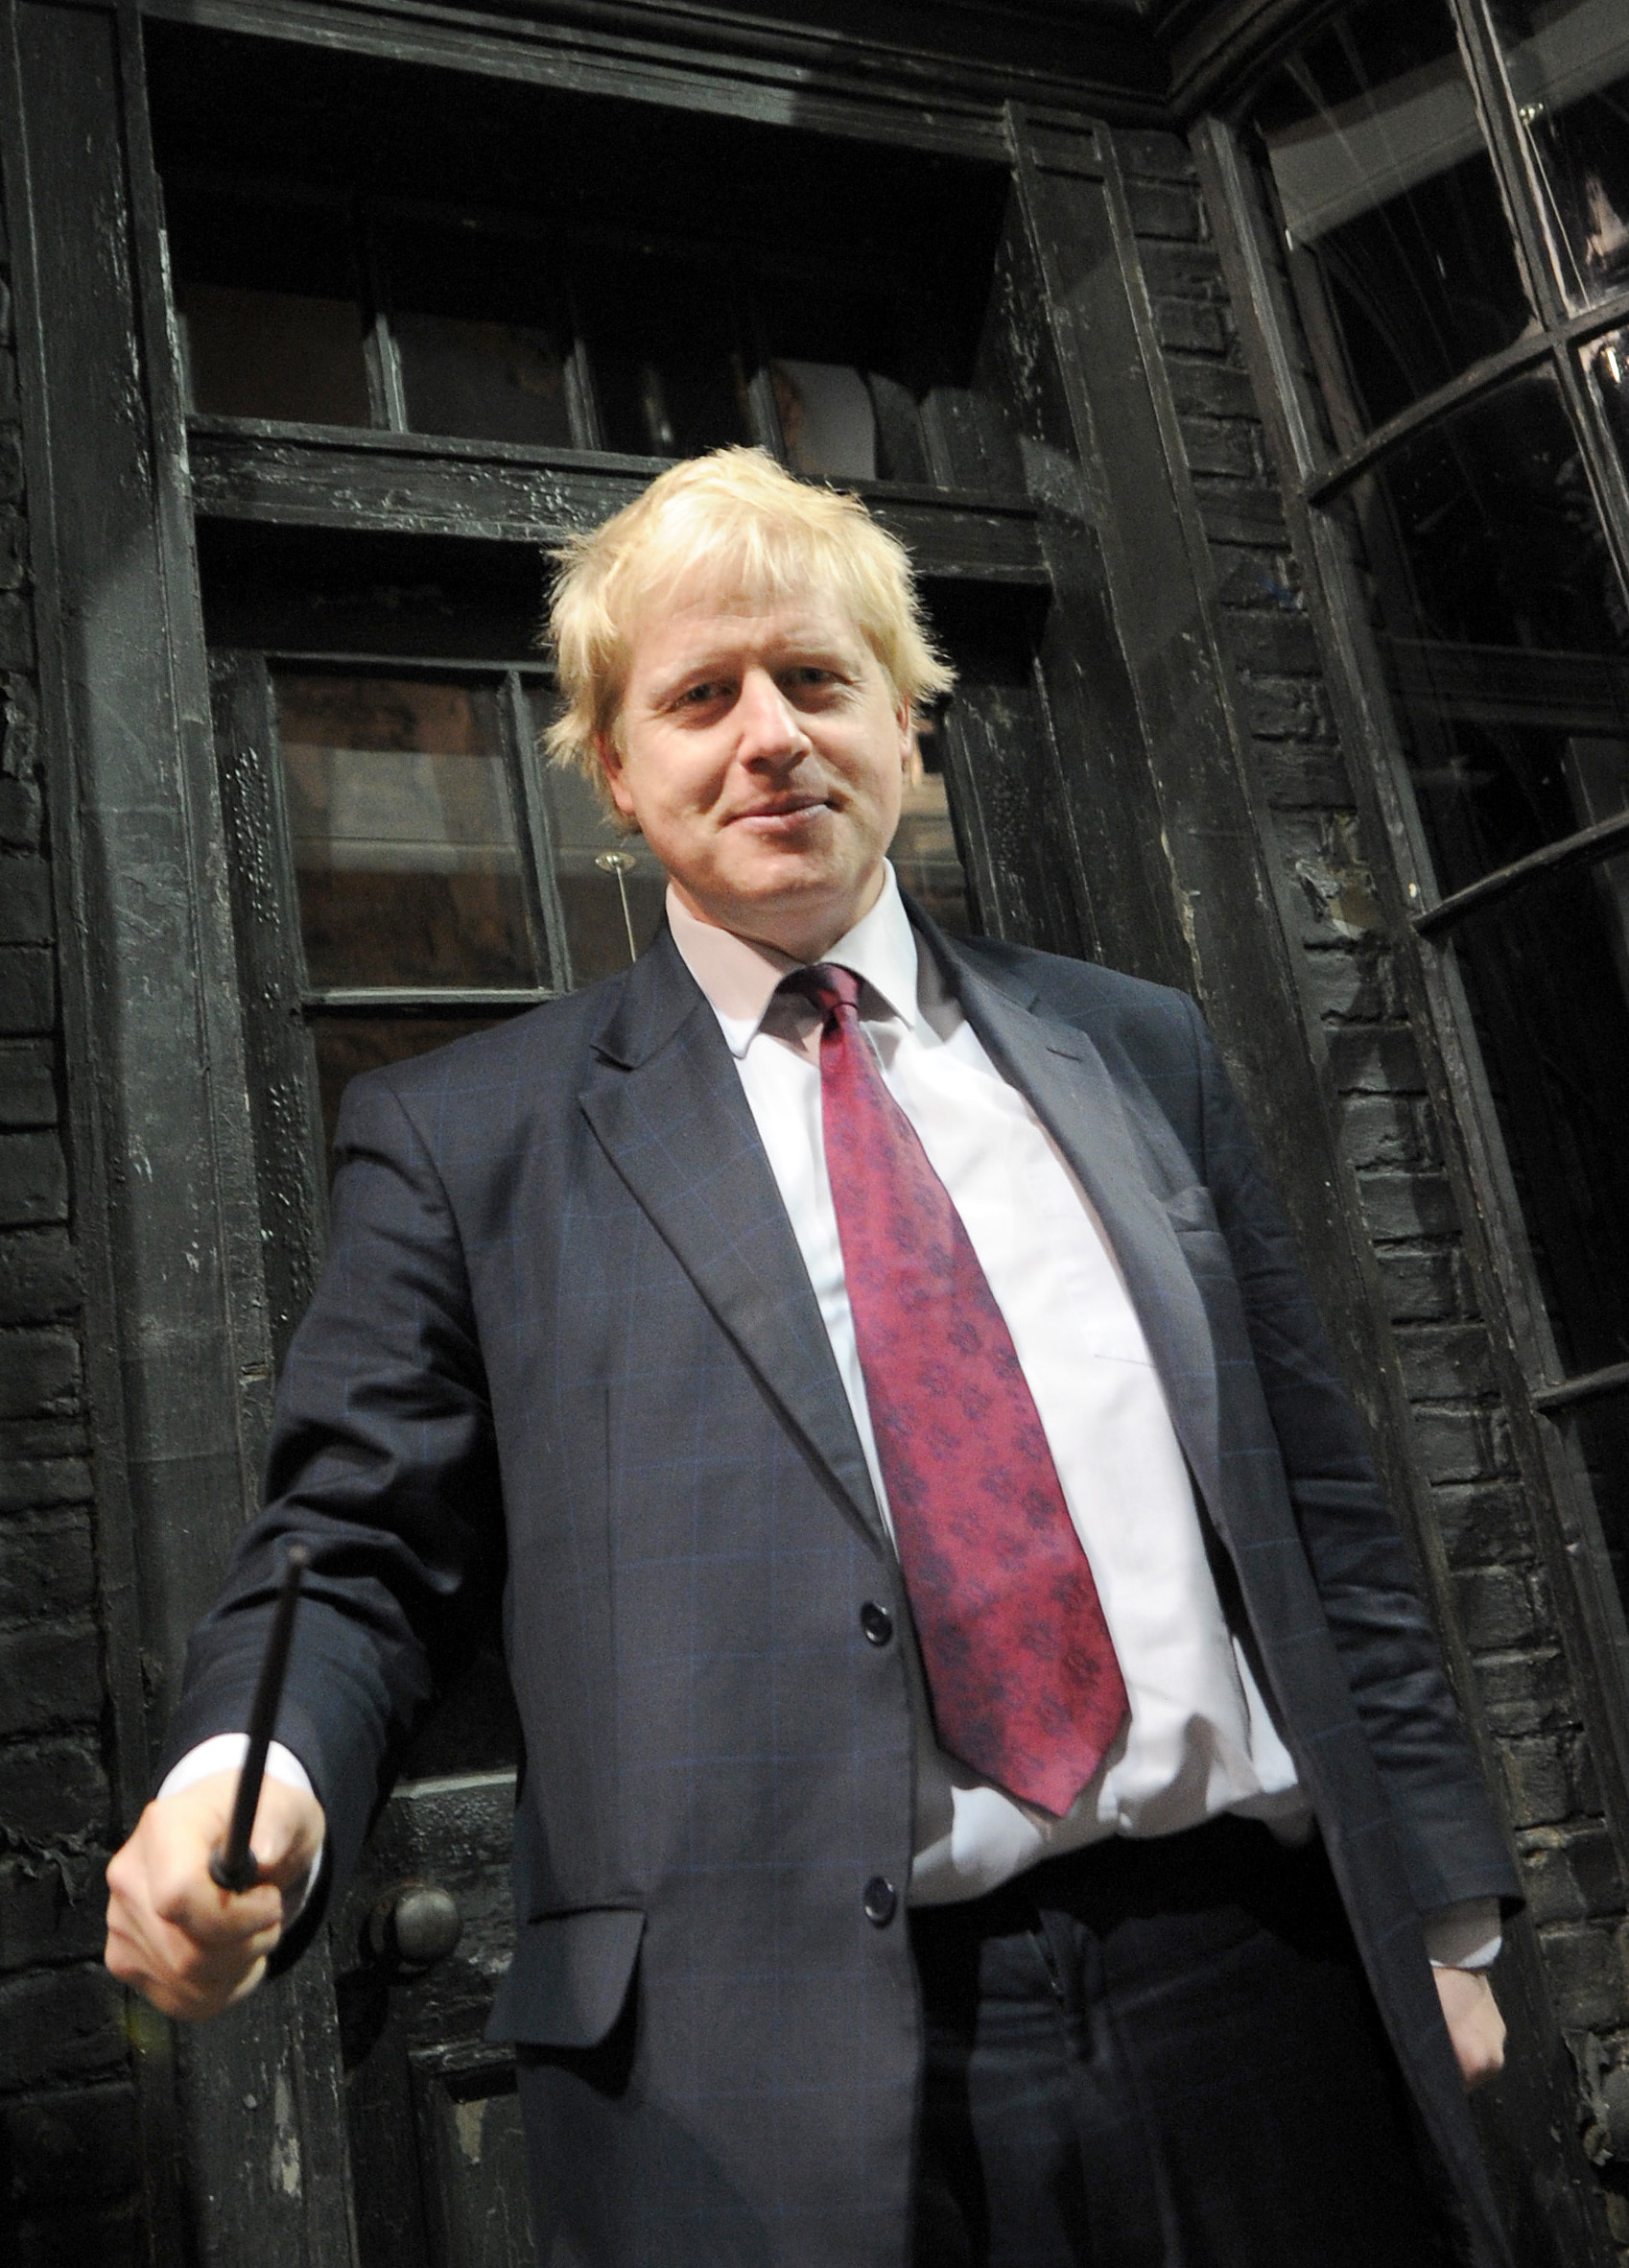 Mayor of London Boris Johnson waves a wand in Diagon Alley as he visits the new attraction 'The Making of Harry Potter' at Warner Brothers studios in Leavesden, Hertfordshire. PRESS ASSOCIATION Photo Monday December 19, 2011. Photo credit should read: Anthony Devlin/PA